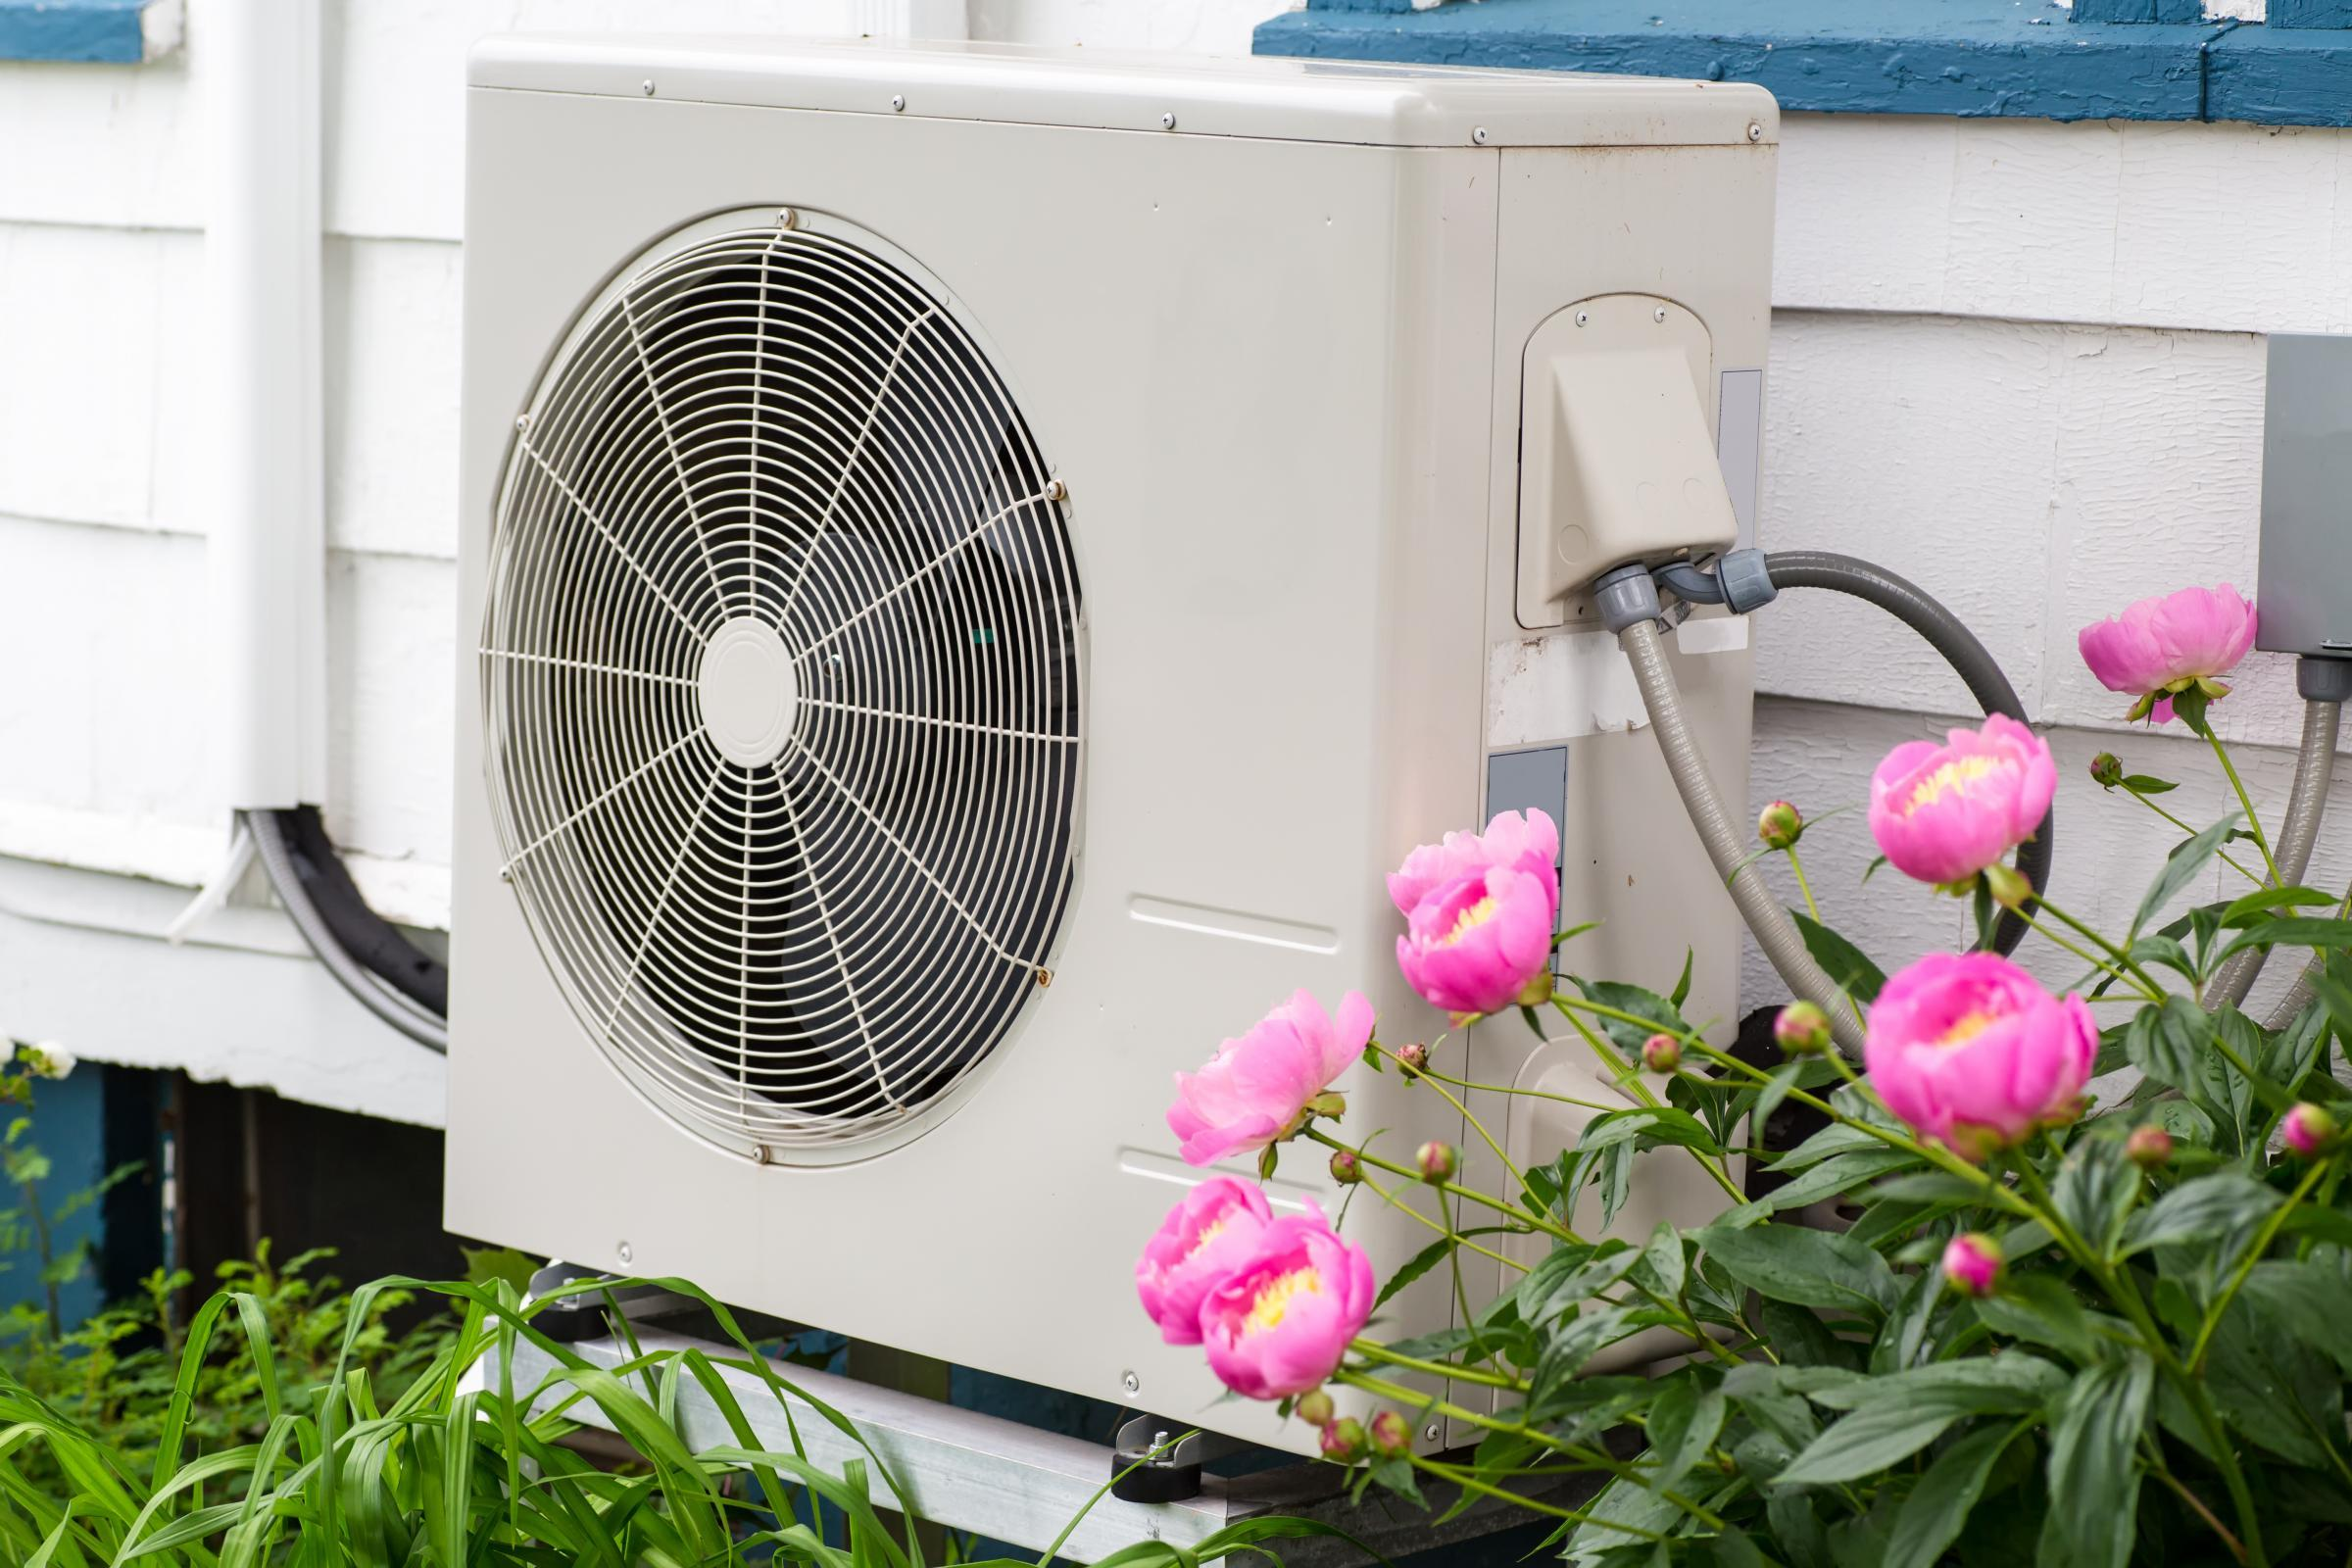 electric heat pump on exterior of house next to flowers